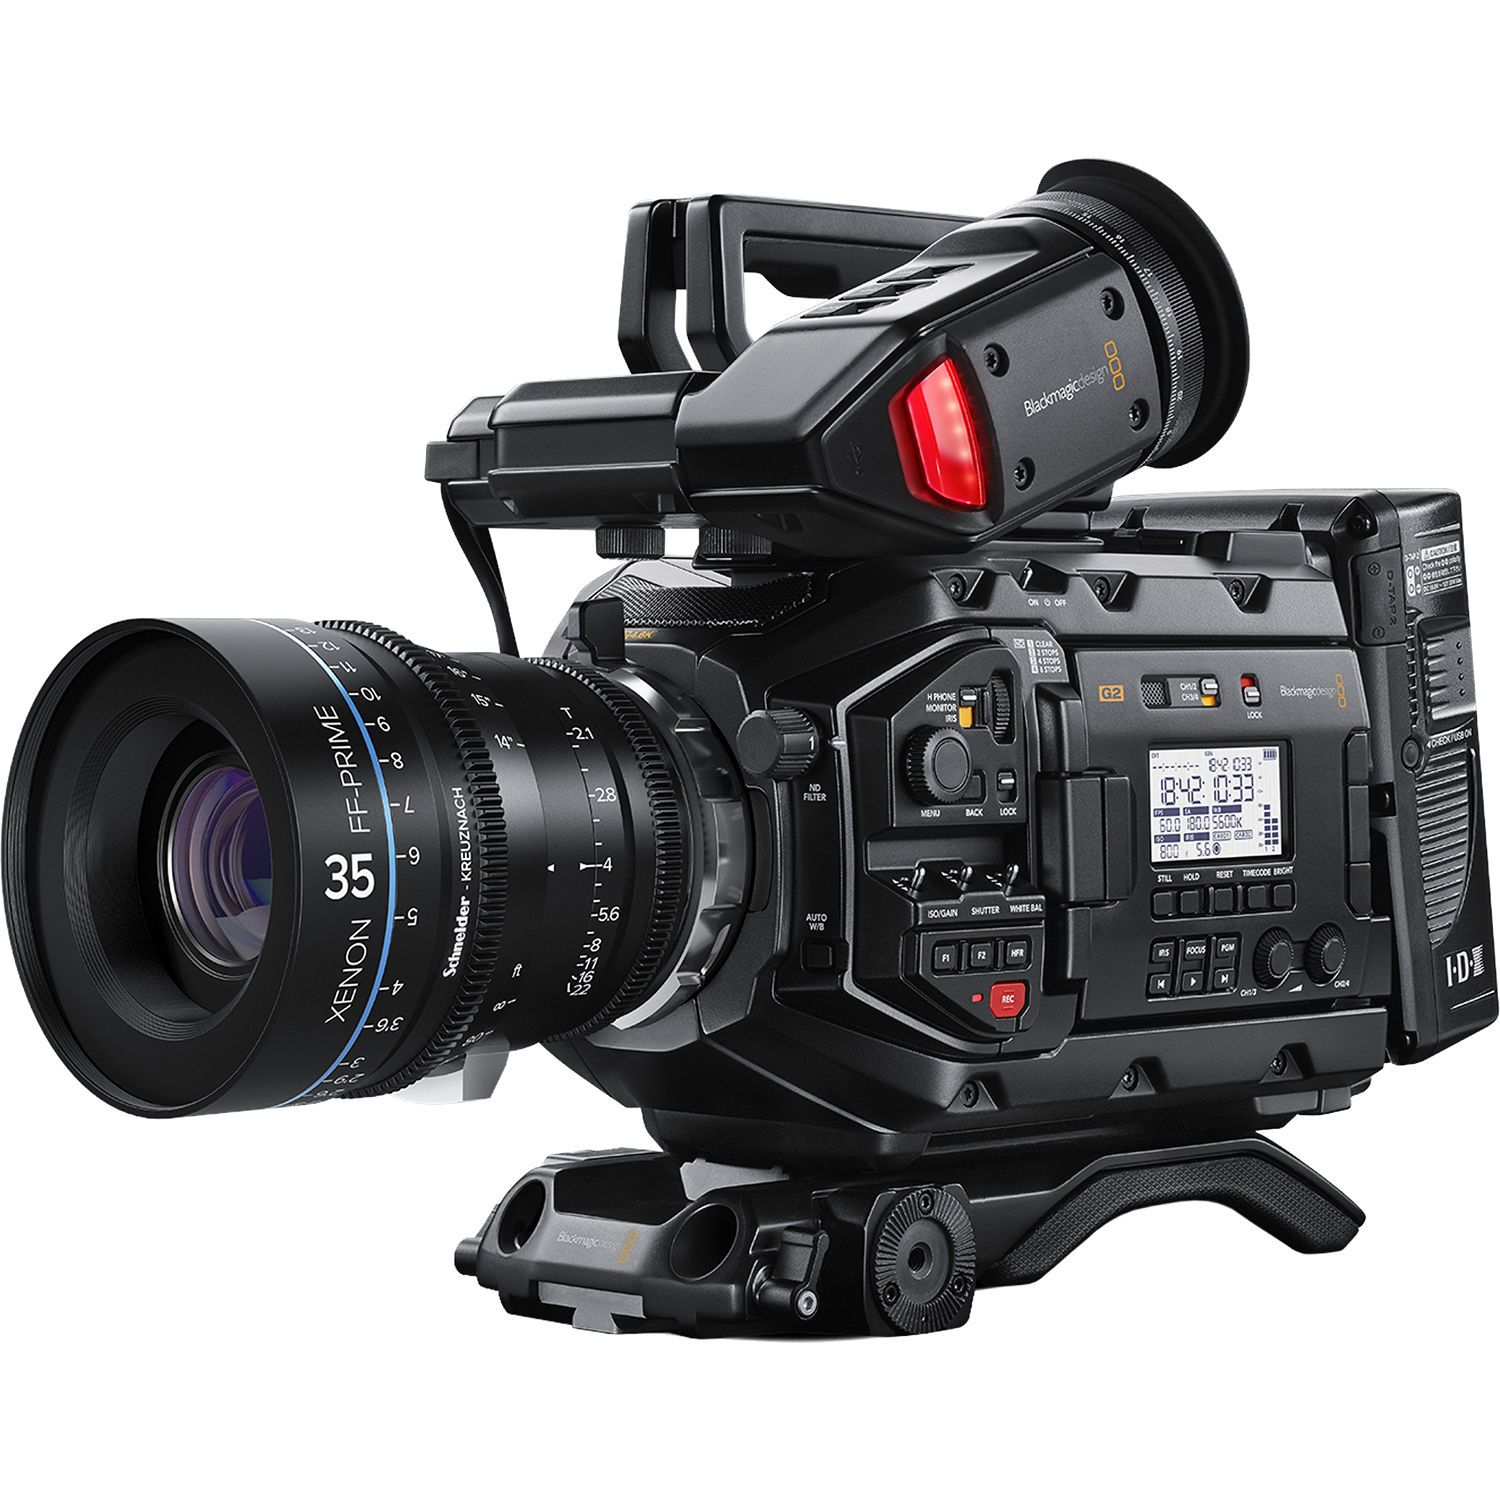 Blackmagic Design URSA Mini Pro 4.6K G2 Camara de cine digital